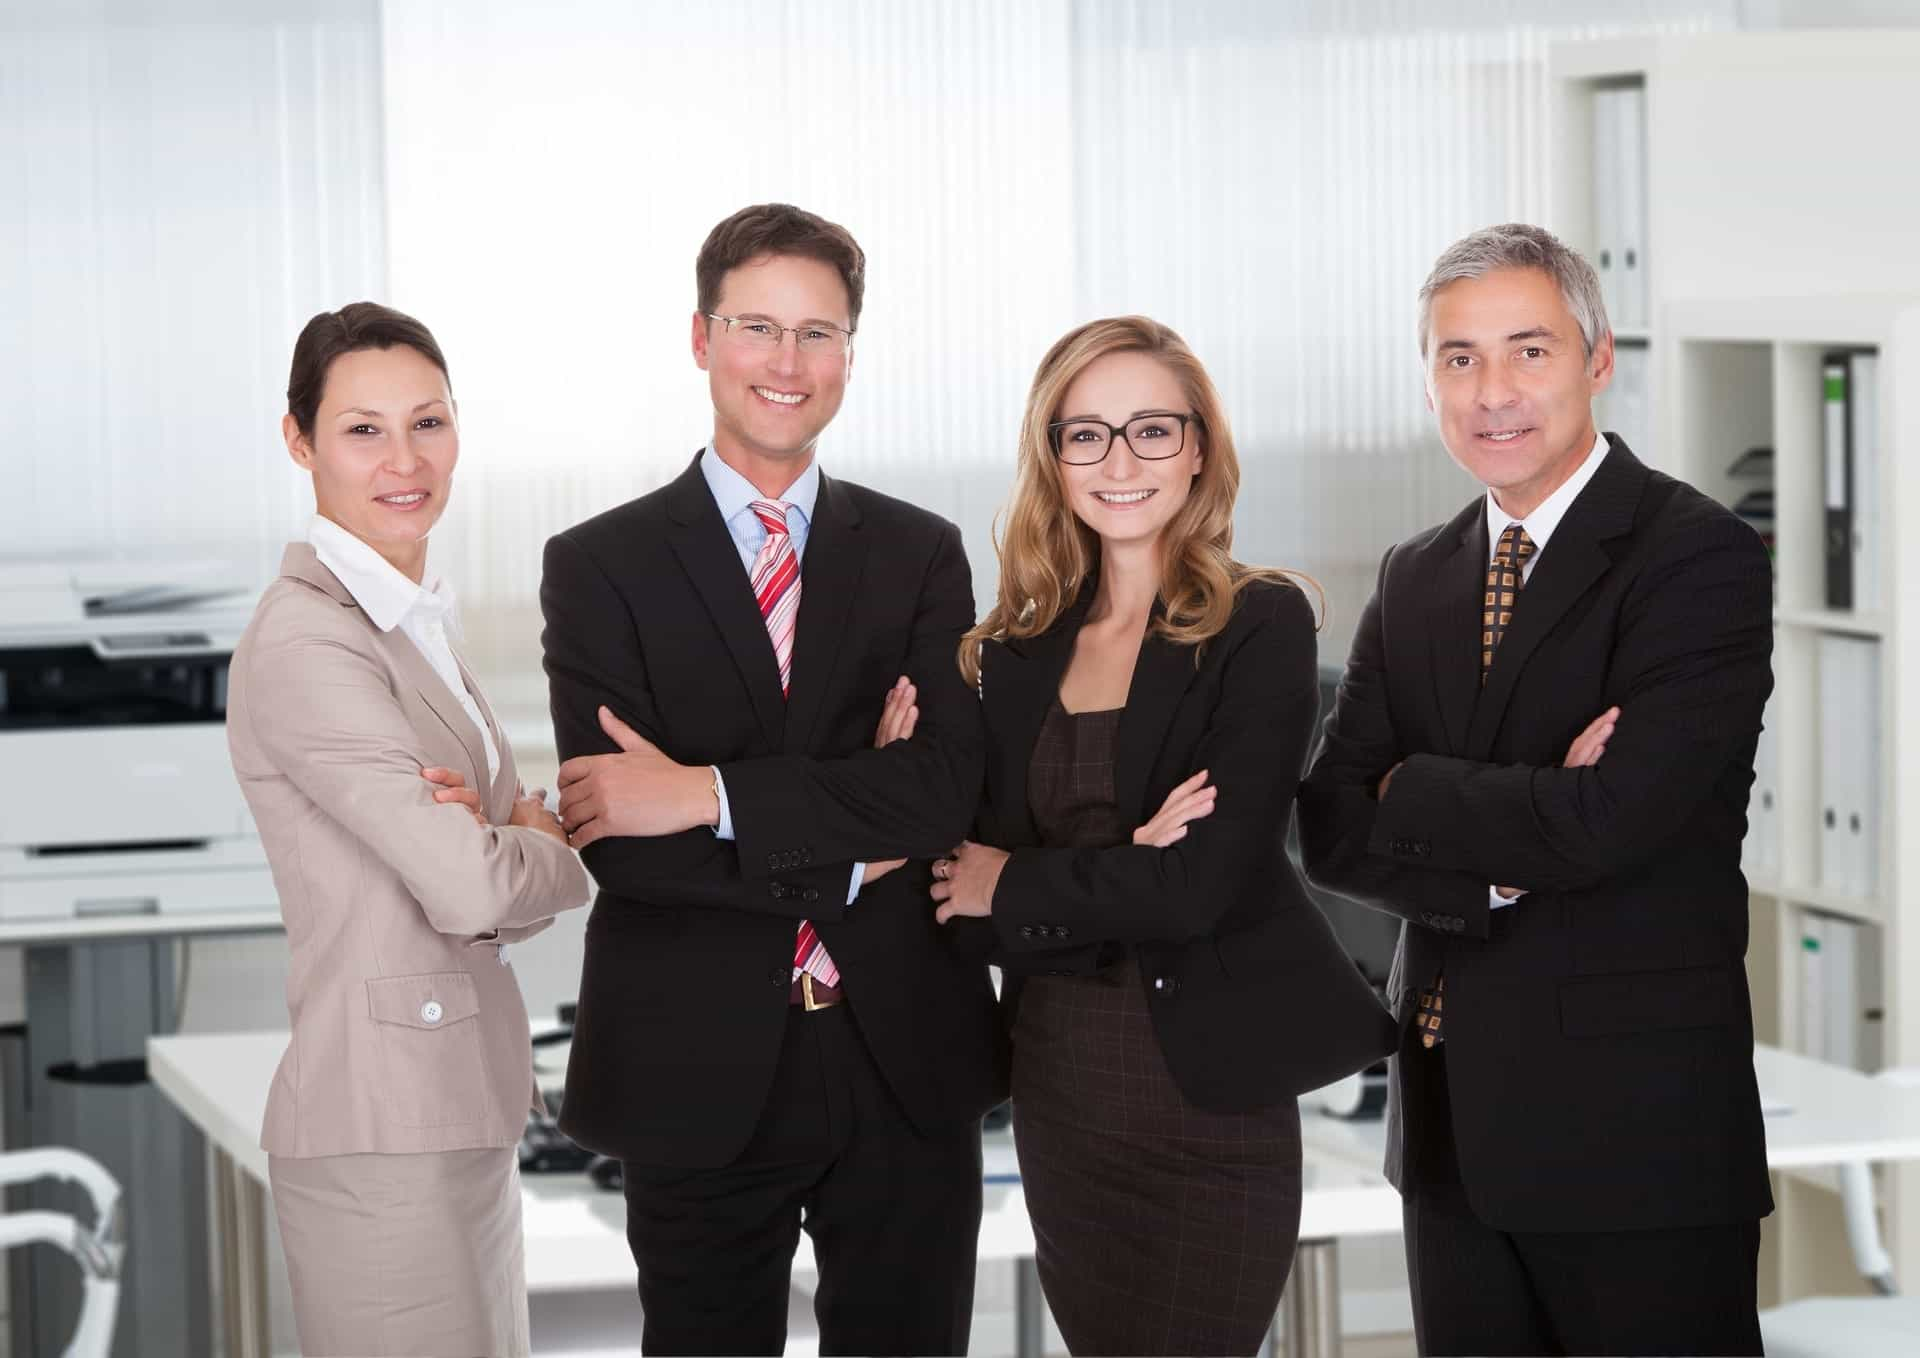 Retirment Coaches, Therapists and Financial Planners